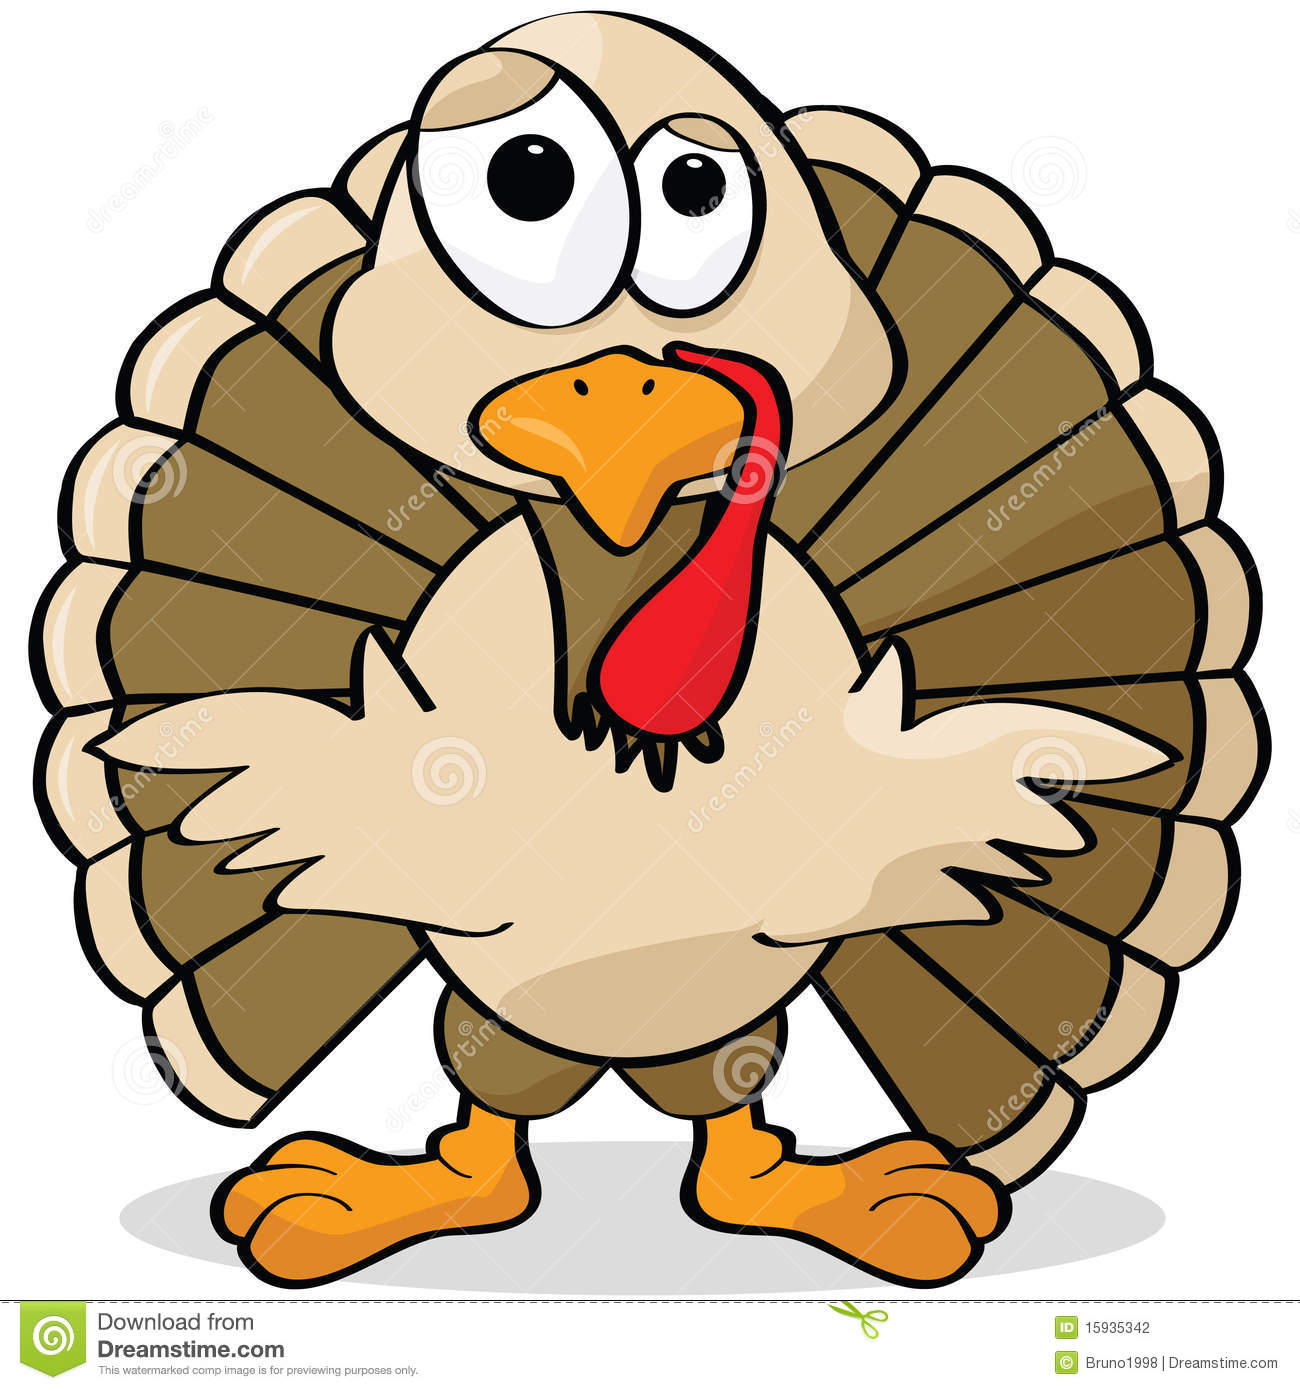 Cartoon turkey stock vector. Illustration of drawing ...